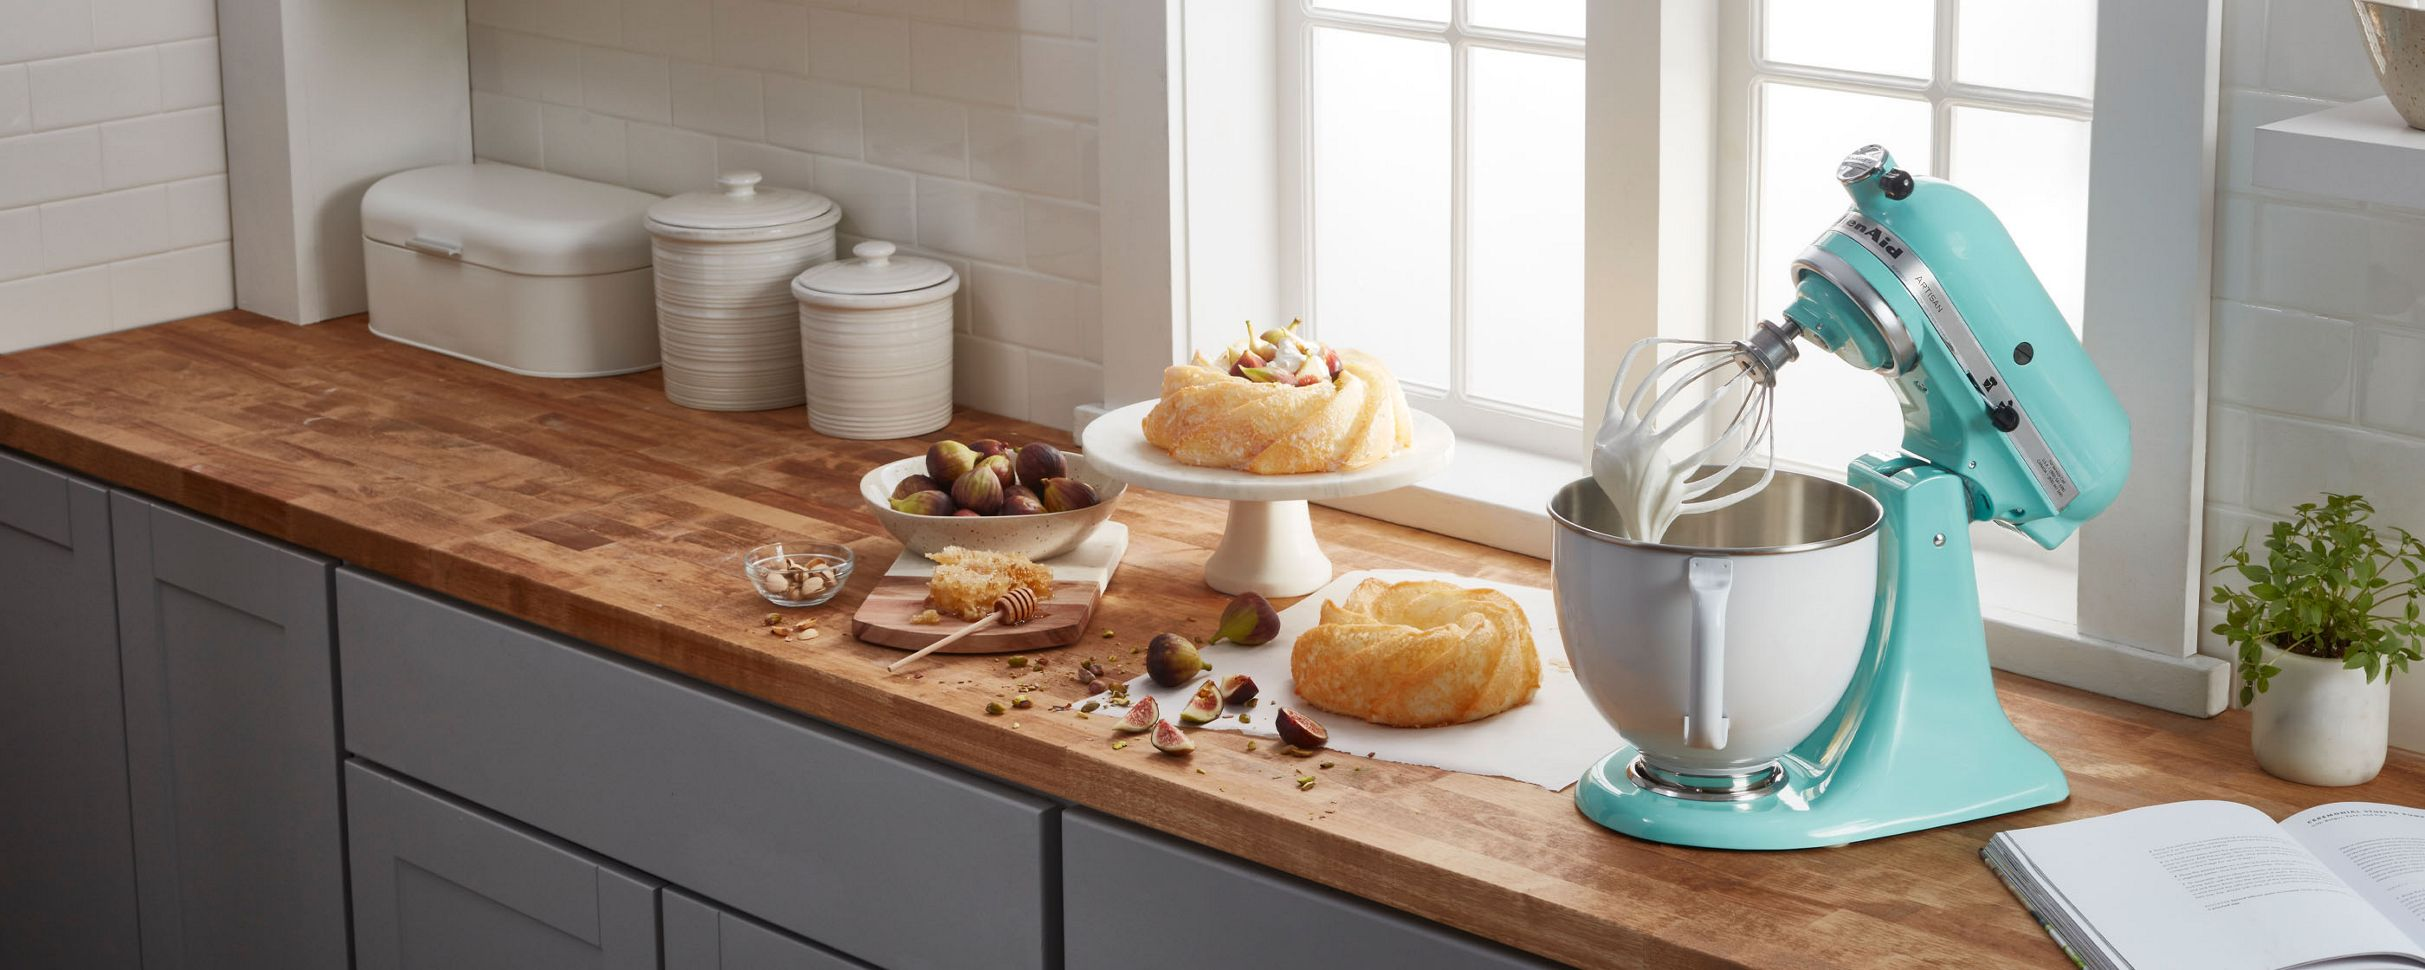 A tilt-head stand mixer with whipped cream surrounded by ingredients and pastries.